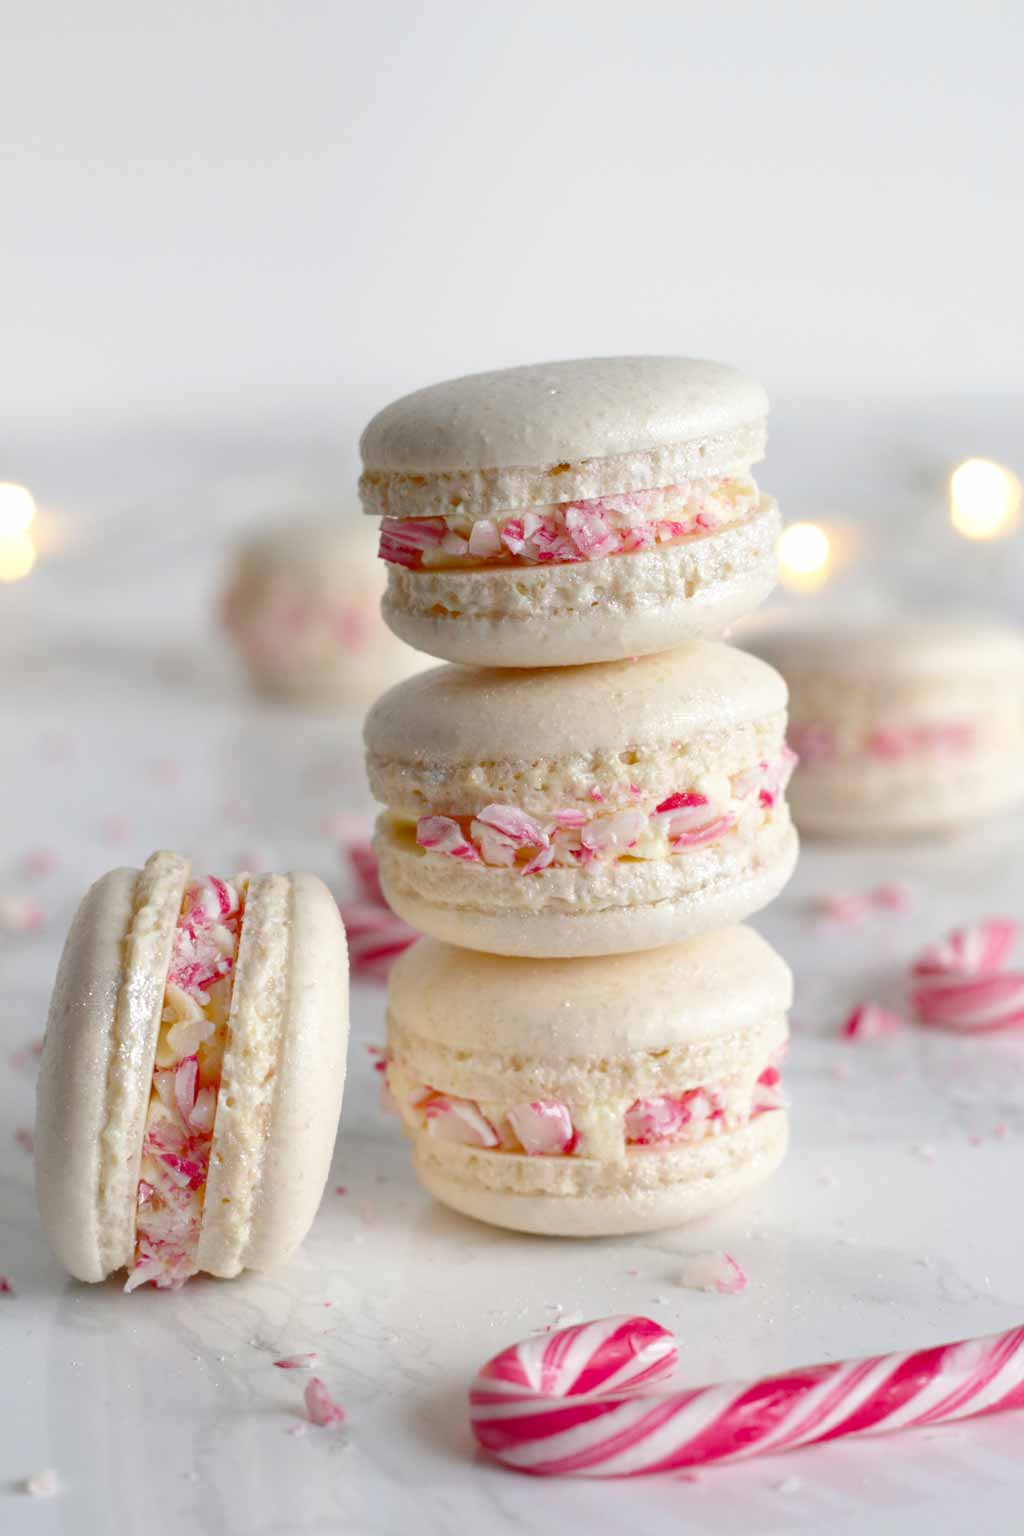 3 macarons stacked on top of one another behind a red and white candy cane